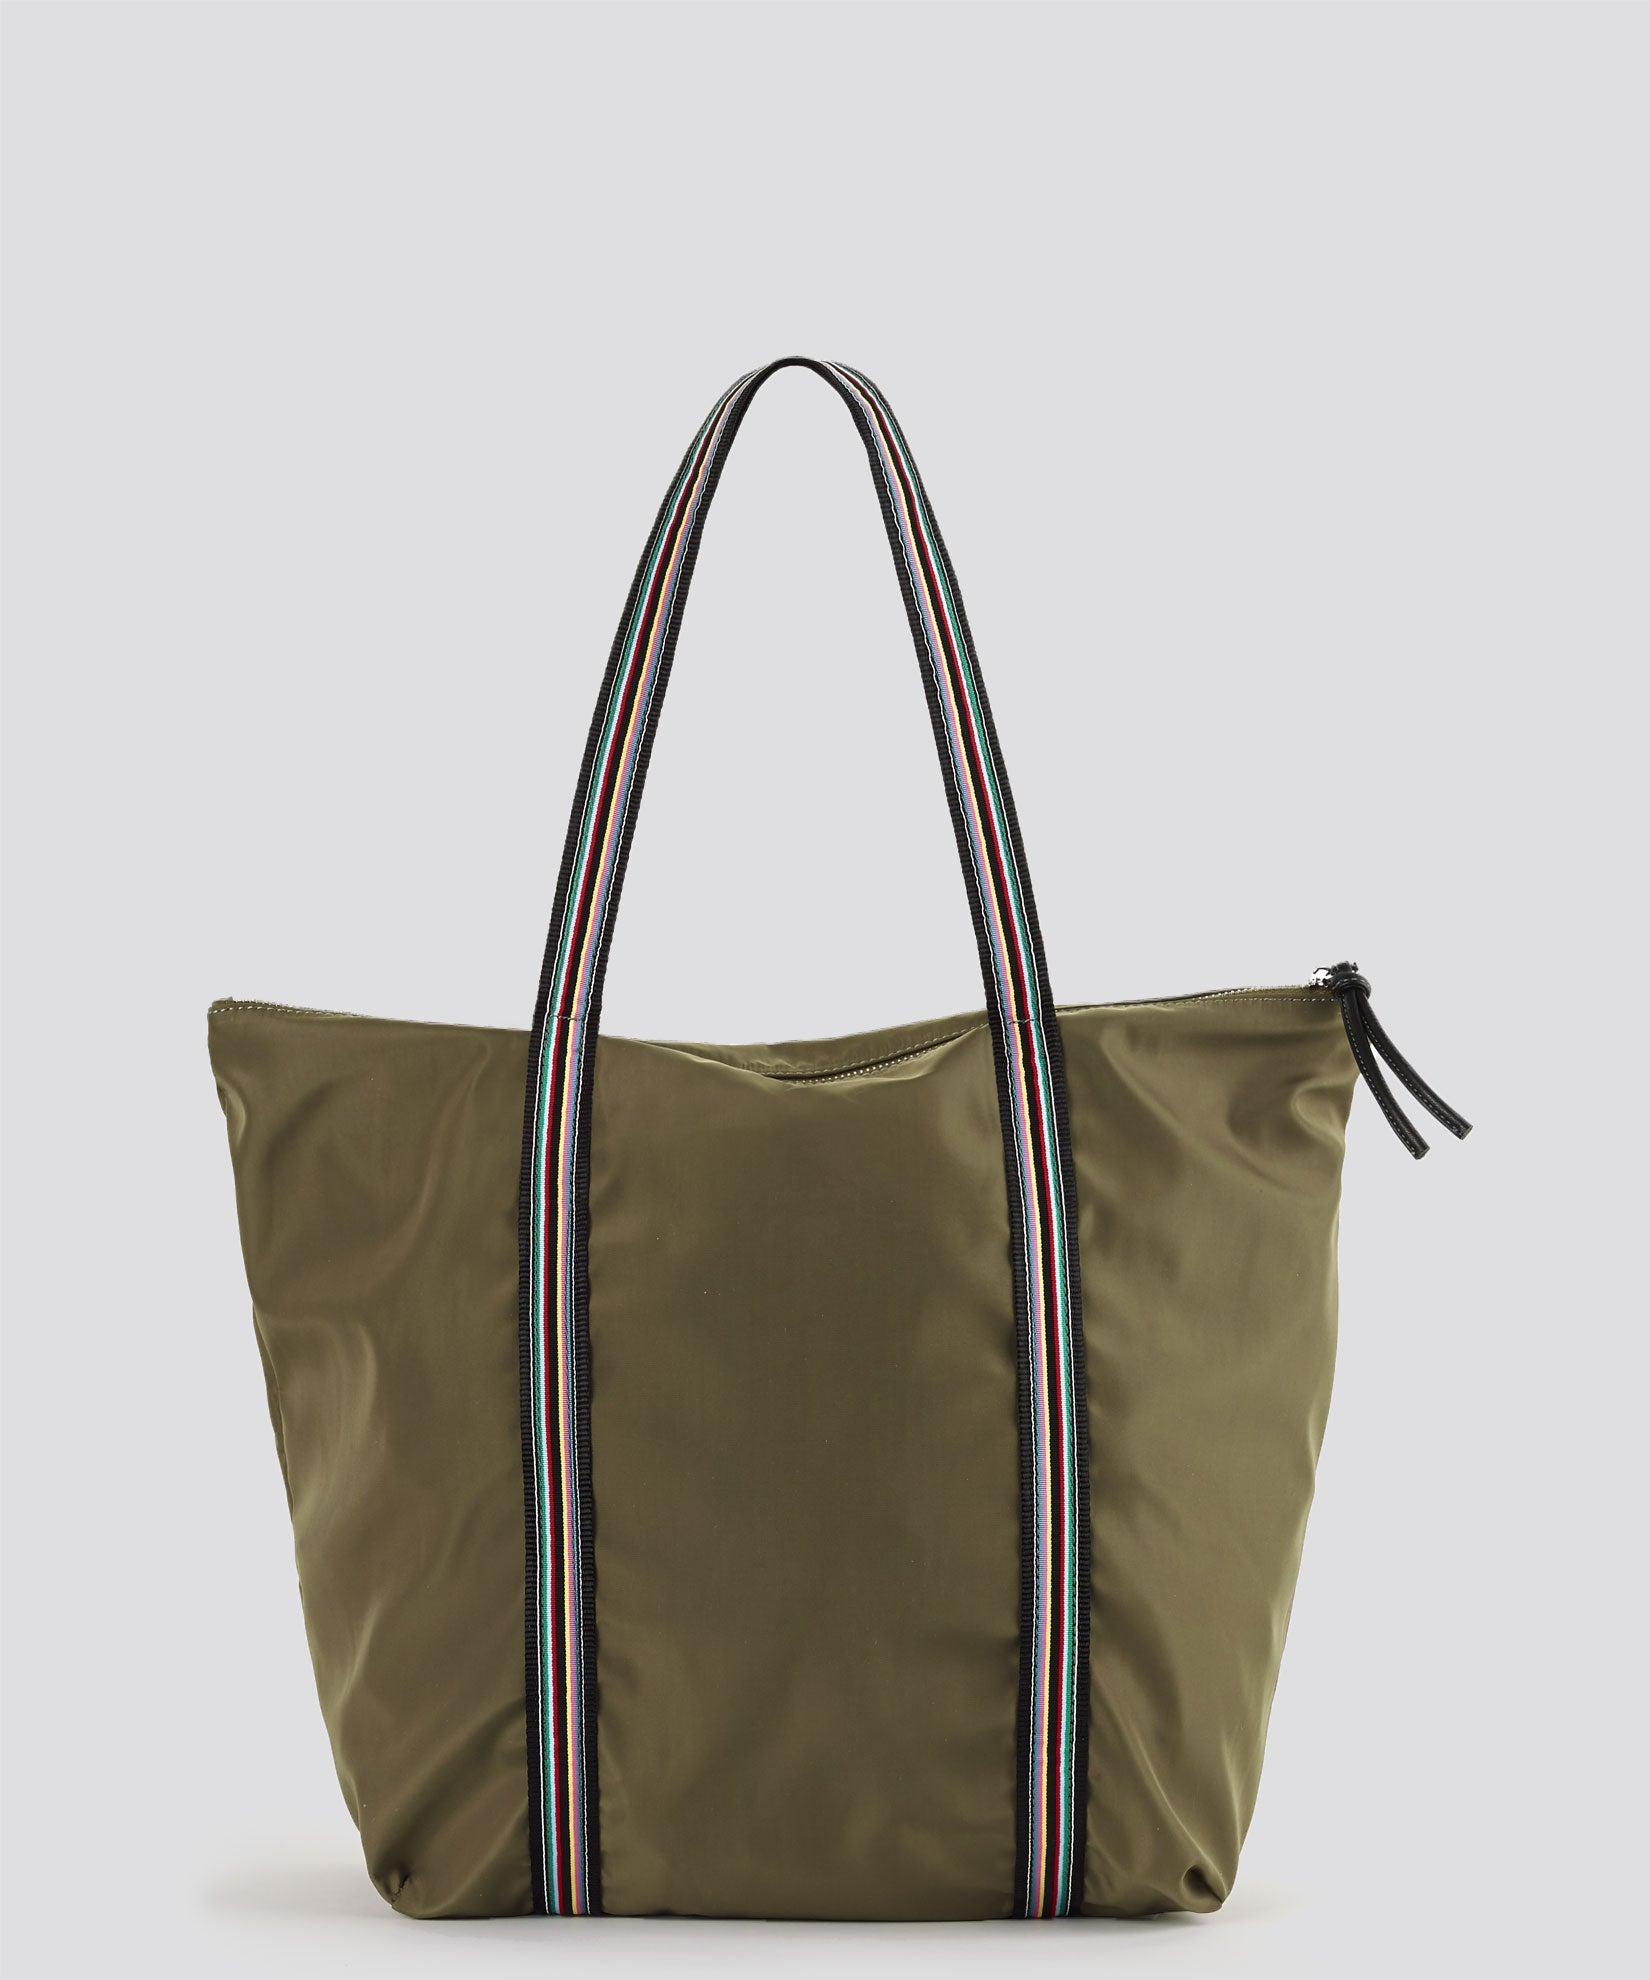 Evergreen - London Errand Tote